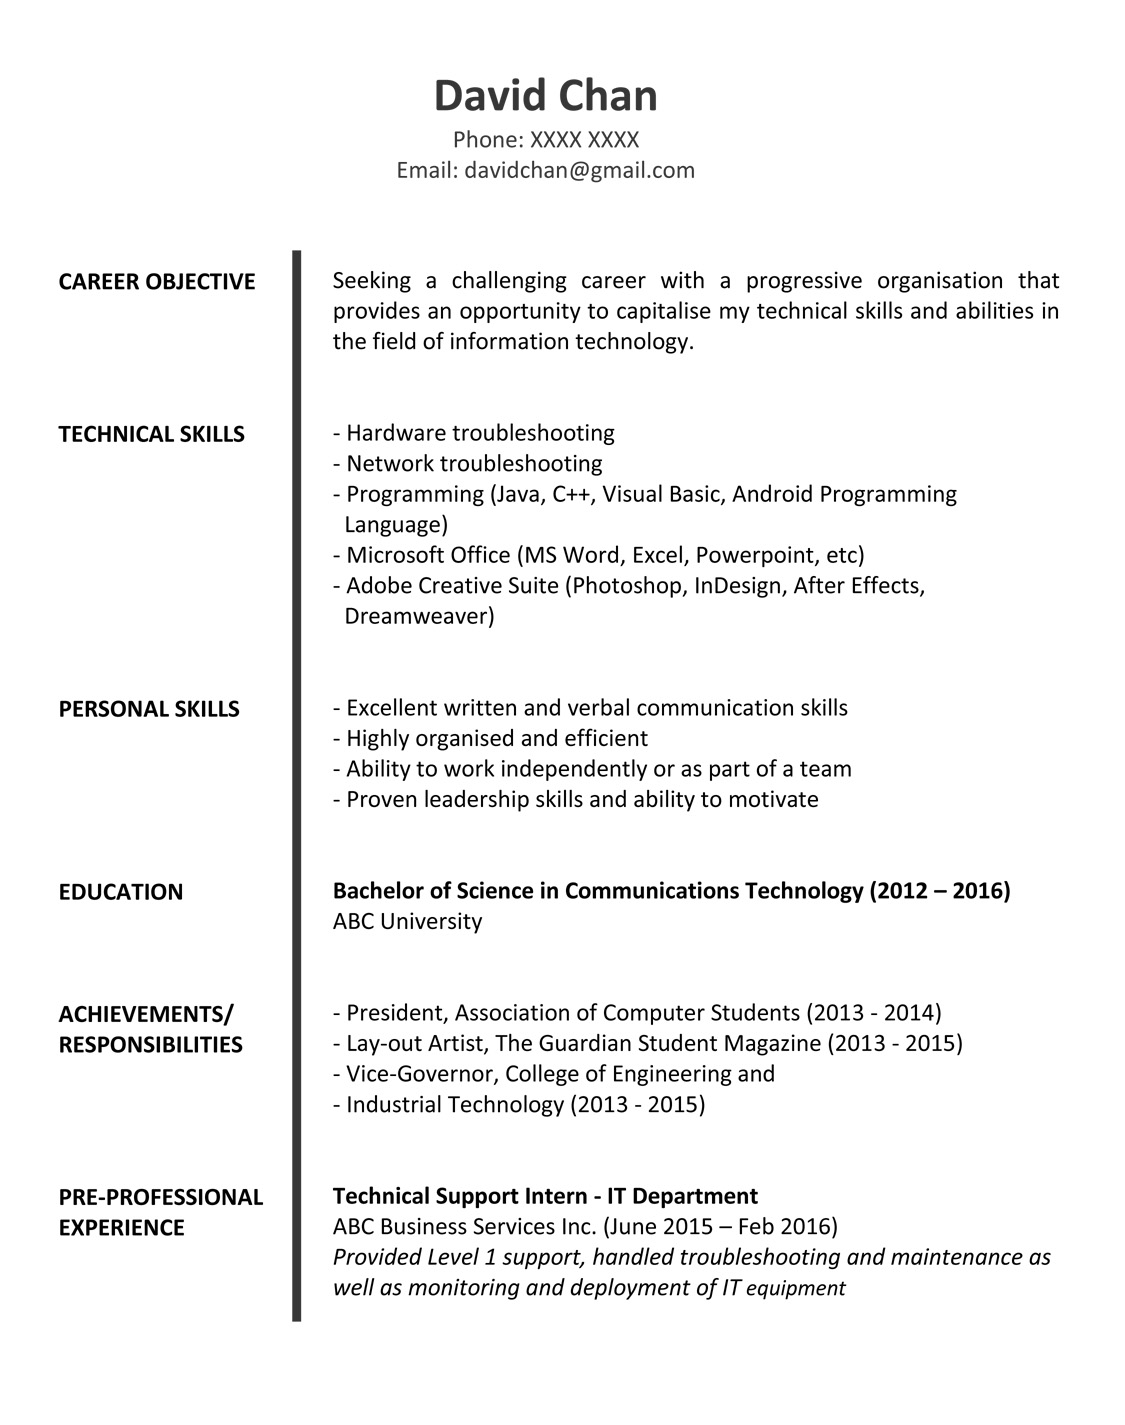 contos dunne communications application letter of fresh graduate best resume objectives Resume Best Resume Objectives For Fresh Graduates